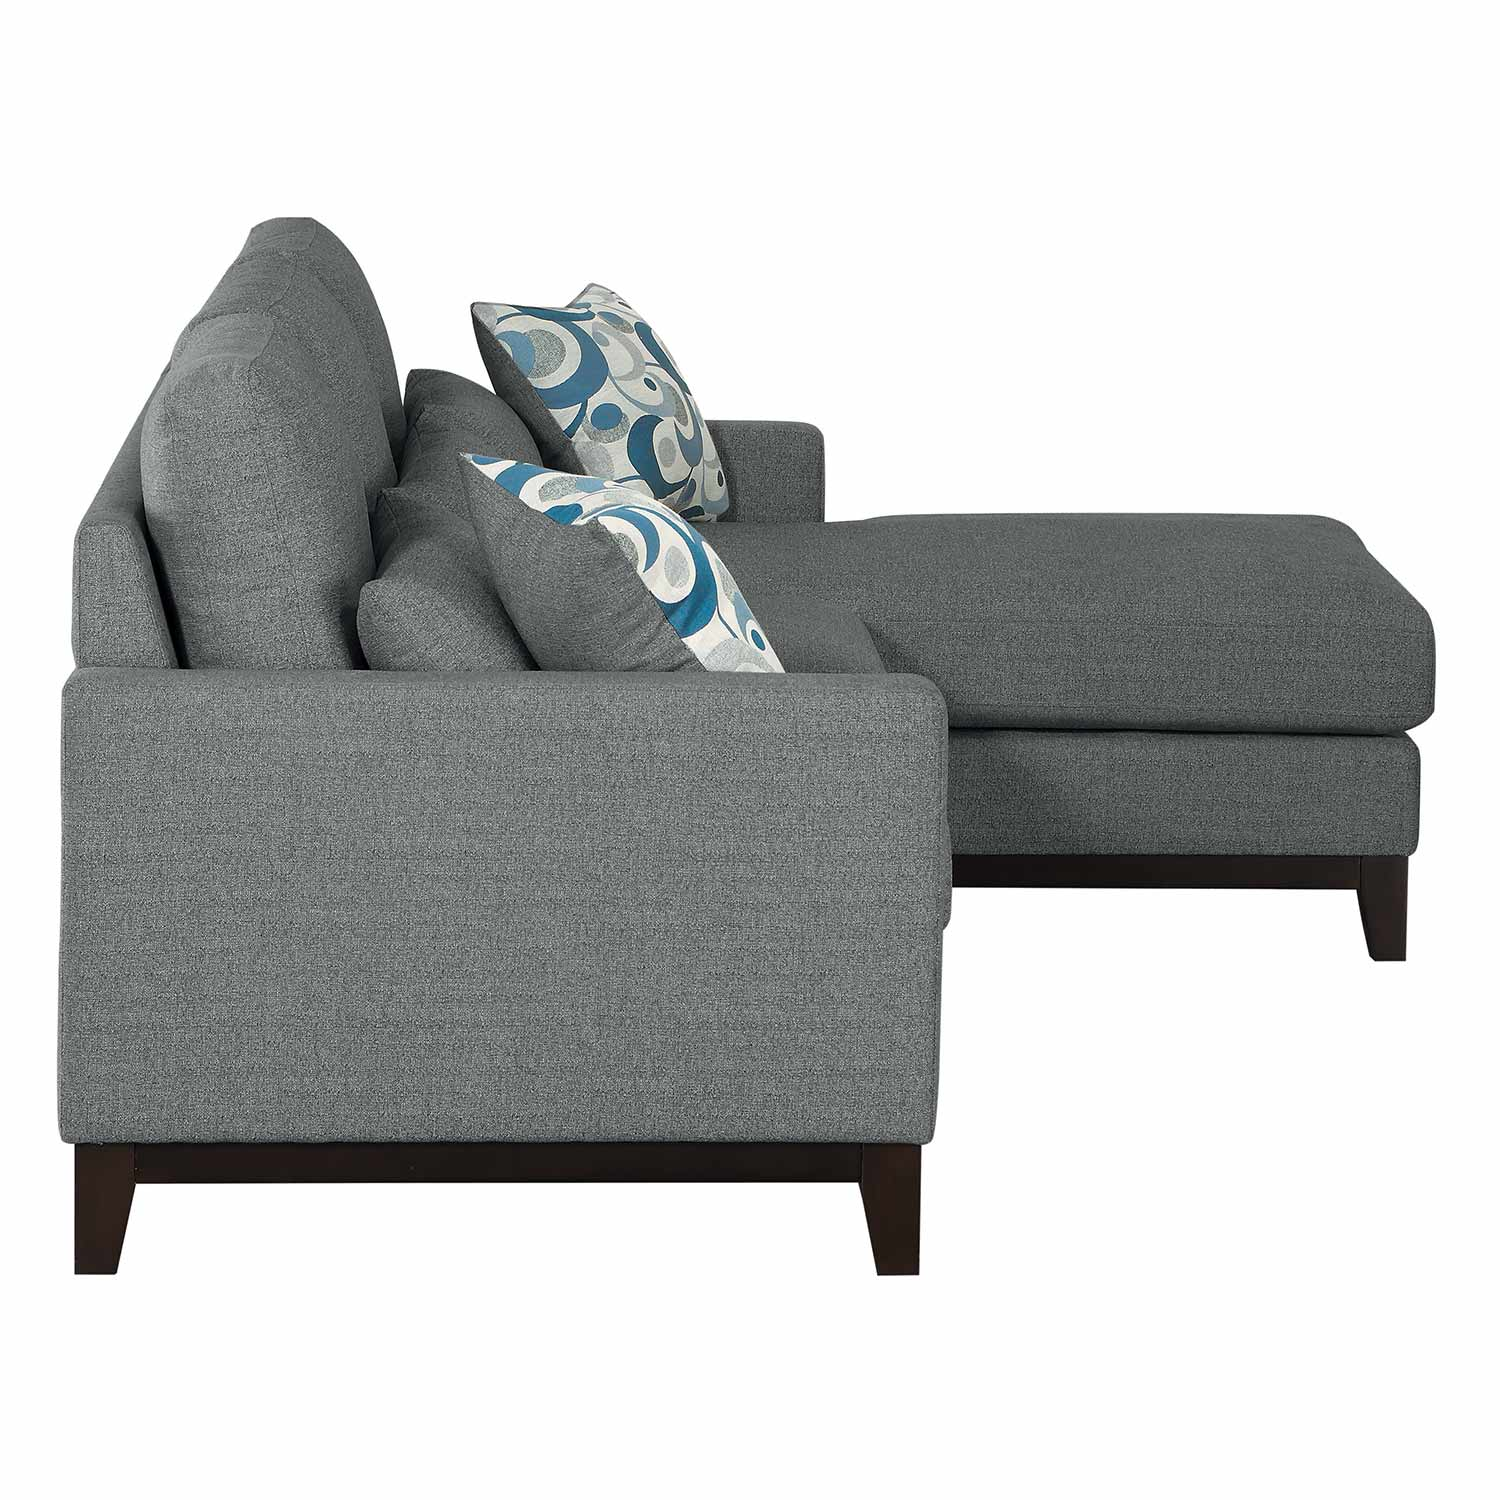 Homelegance Greerman Sectional Sofa Set - Gray